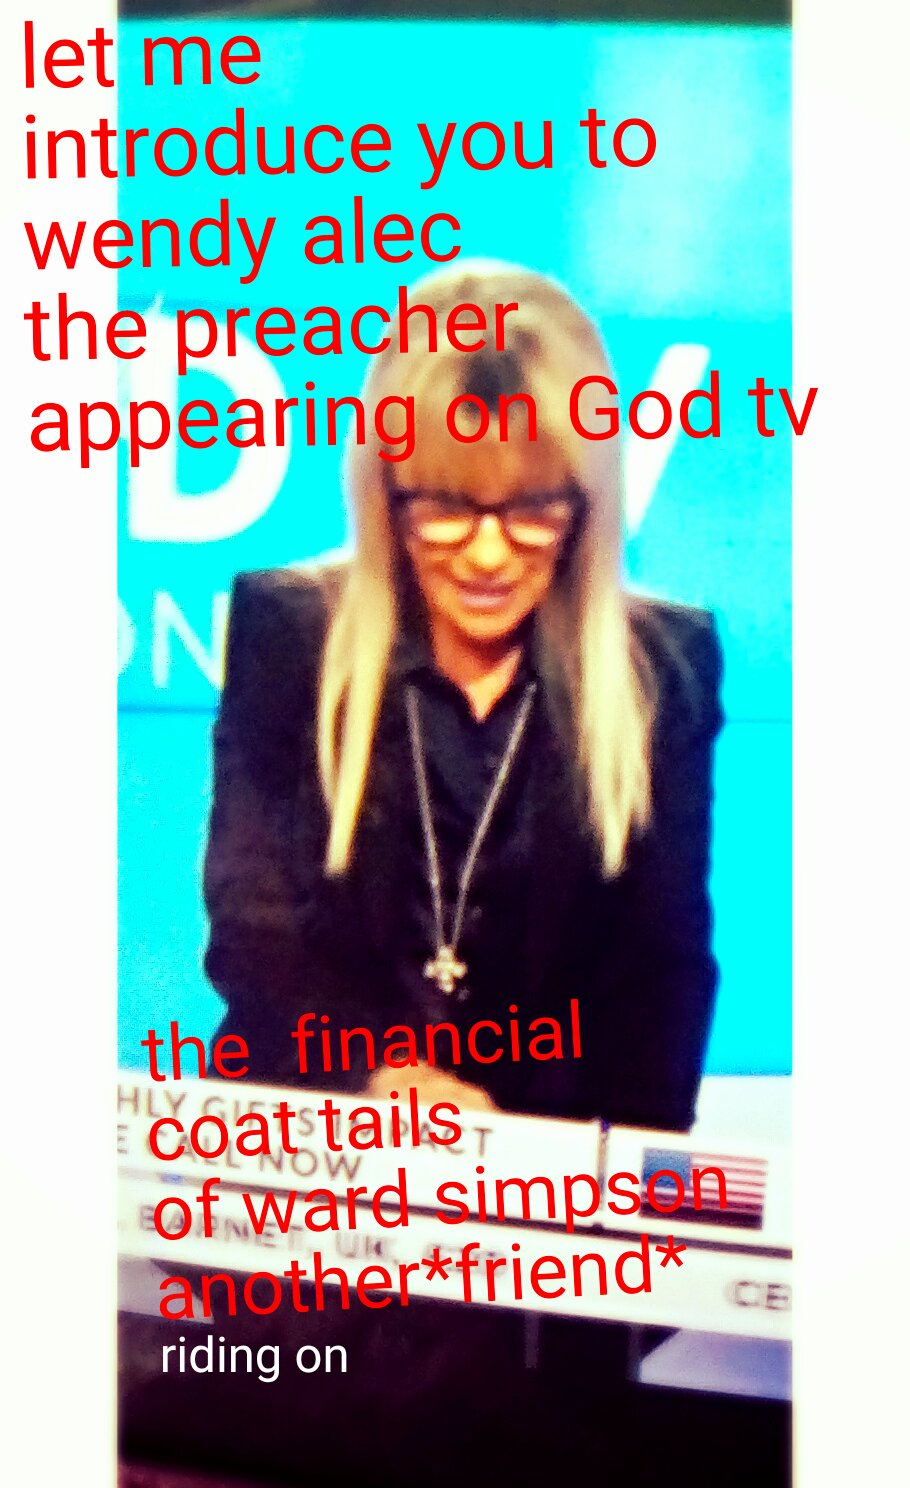 The Governmental Goals Of God Tv Part Ii €� Exposing The Hidden Governmental  Agendas Behind The Seemingly Innocent Looking Facade Of God Tv